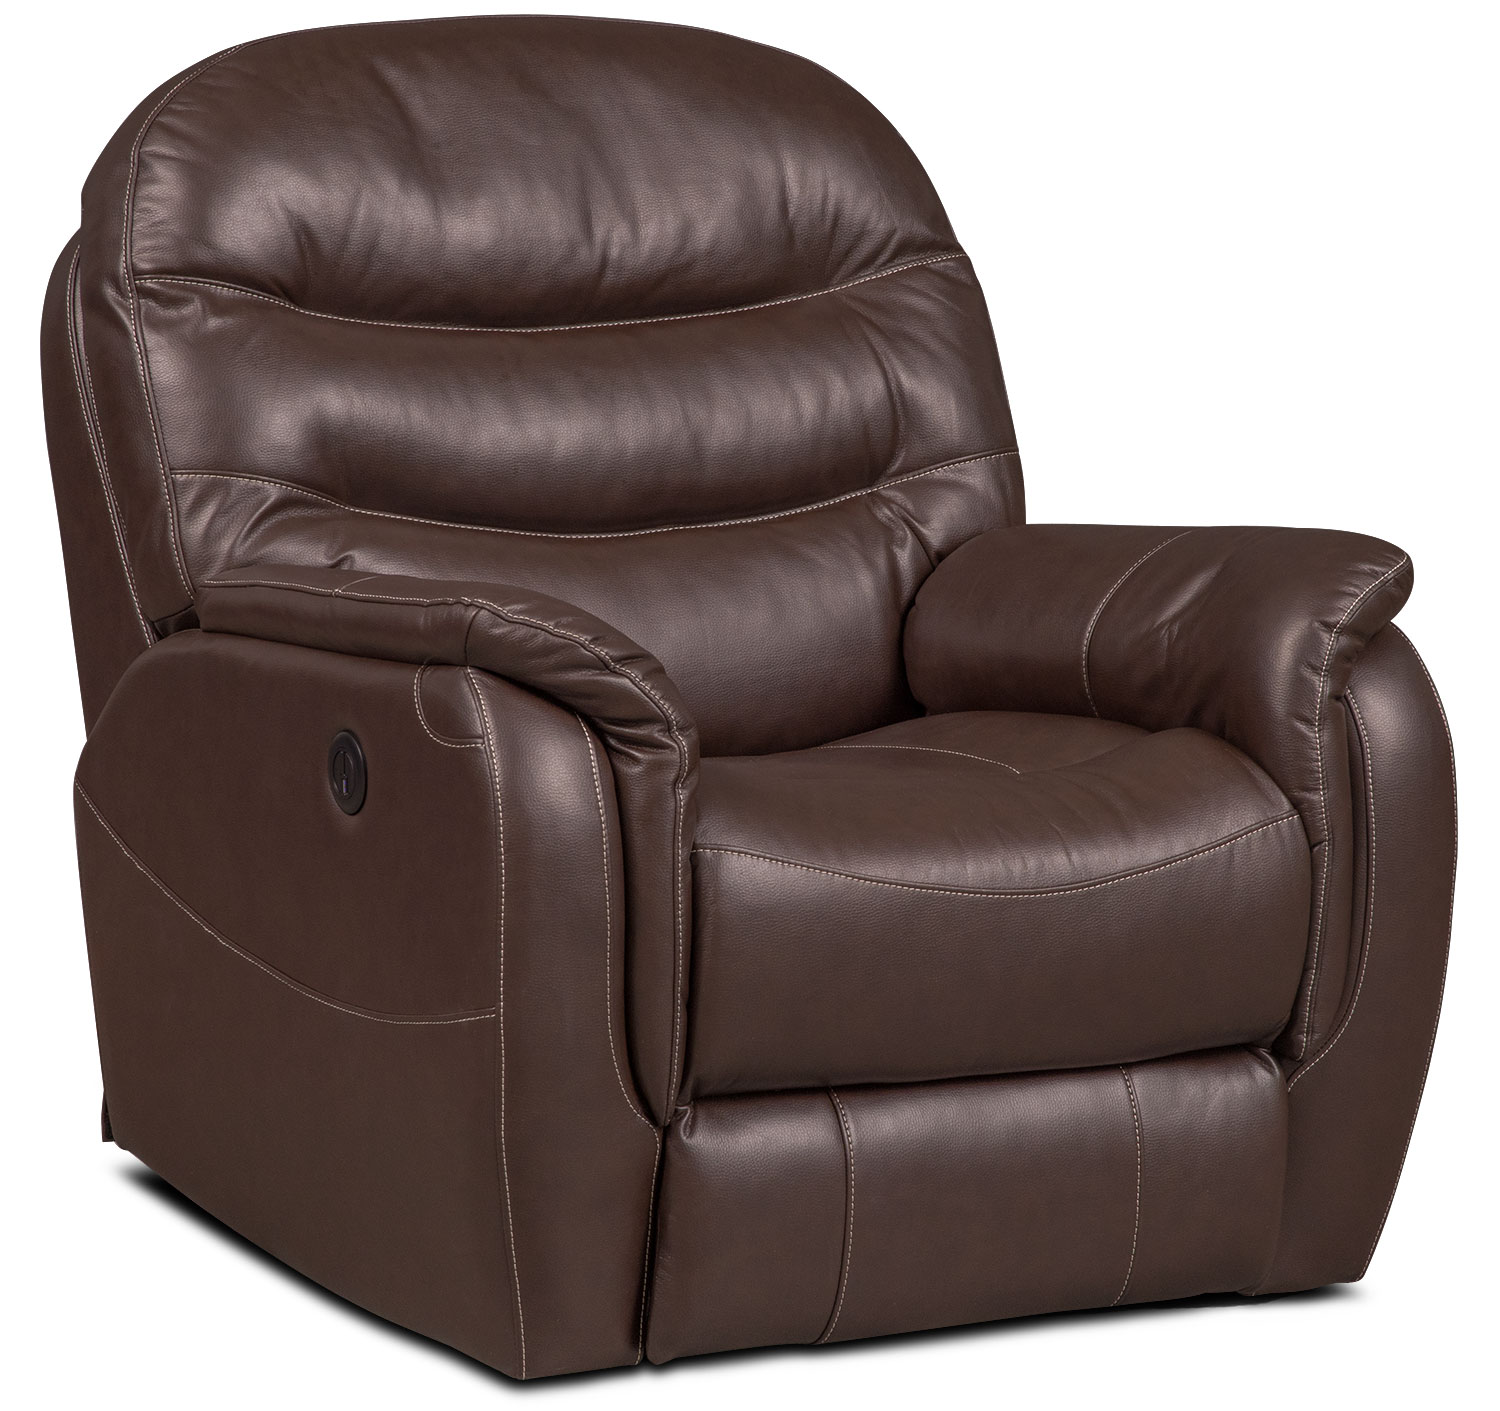 Recliners And Glider Chairs American Signature American Signature Furniture